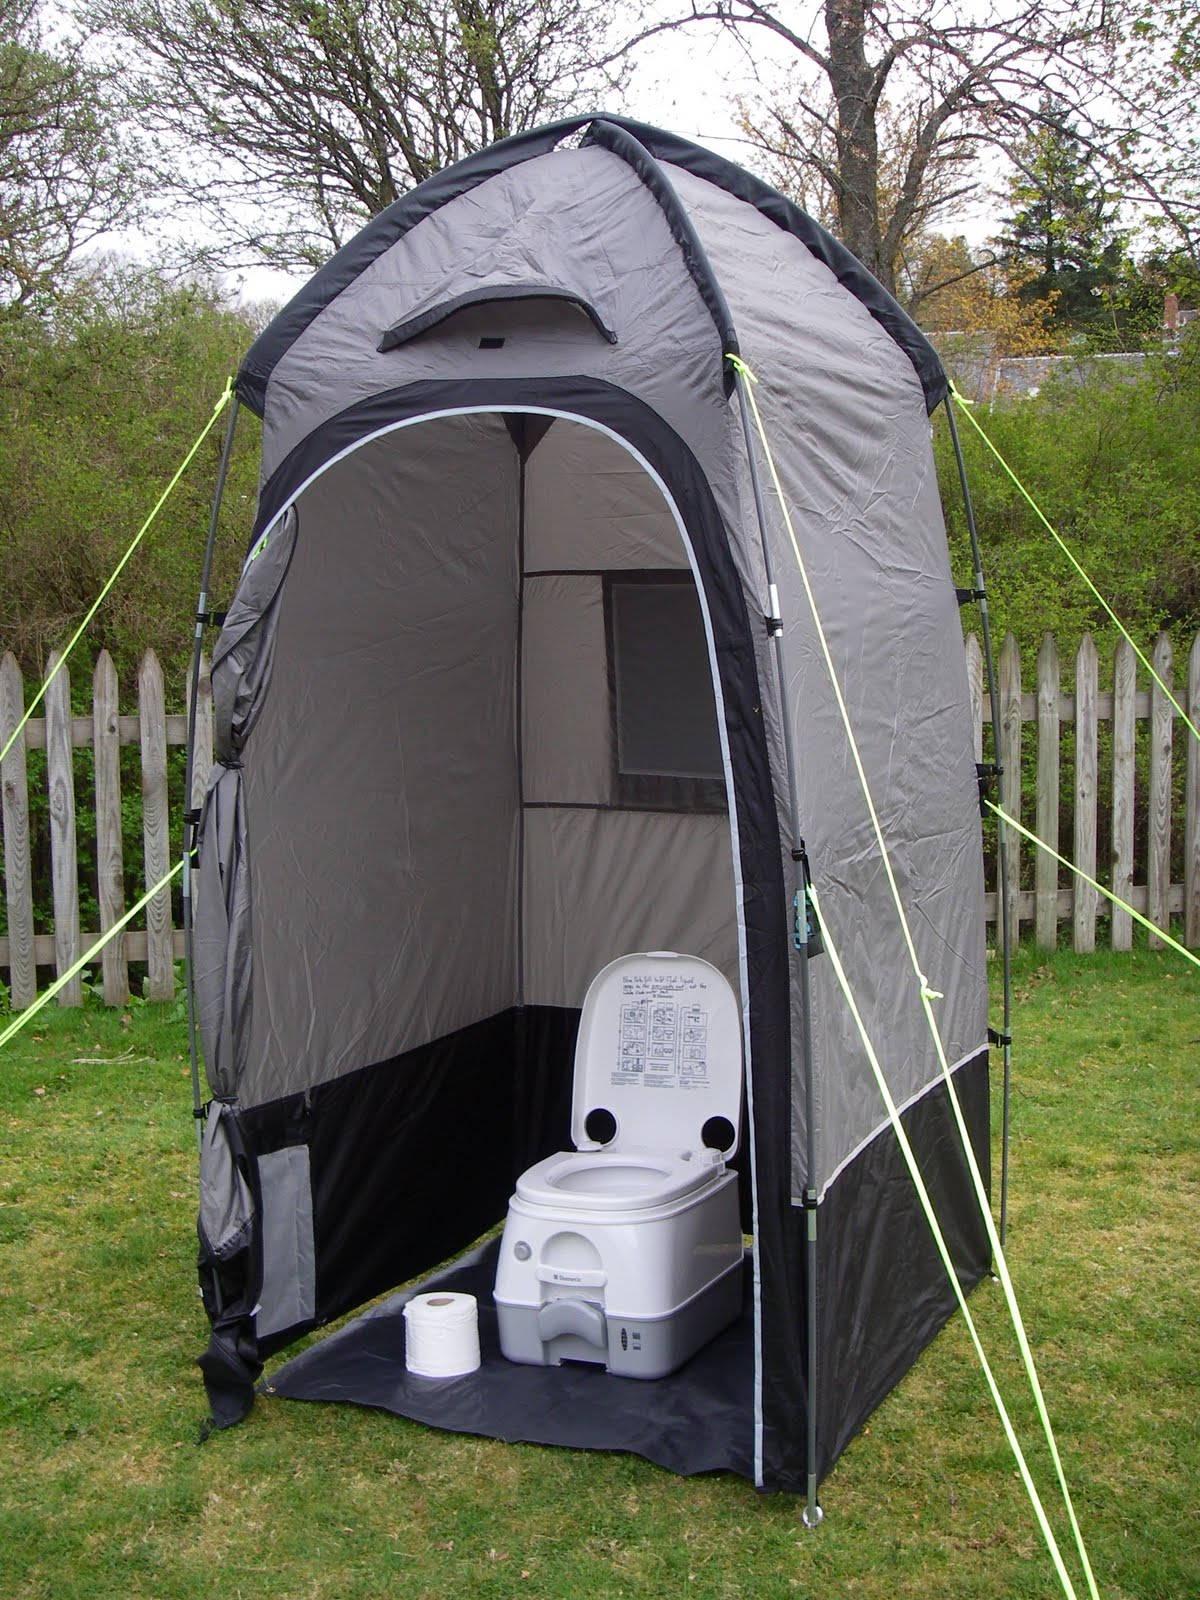 Hire a toilet and tent with your c&ervan & Big Tree Campervans: Hire a toilet and tent with your campervan